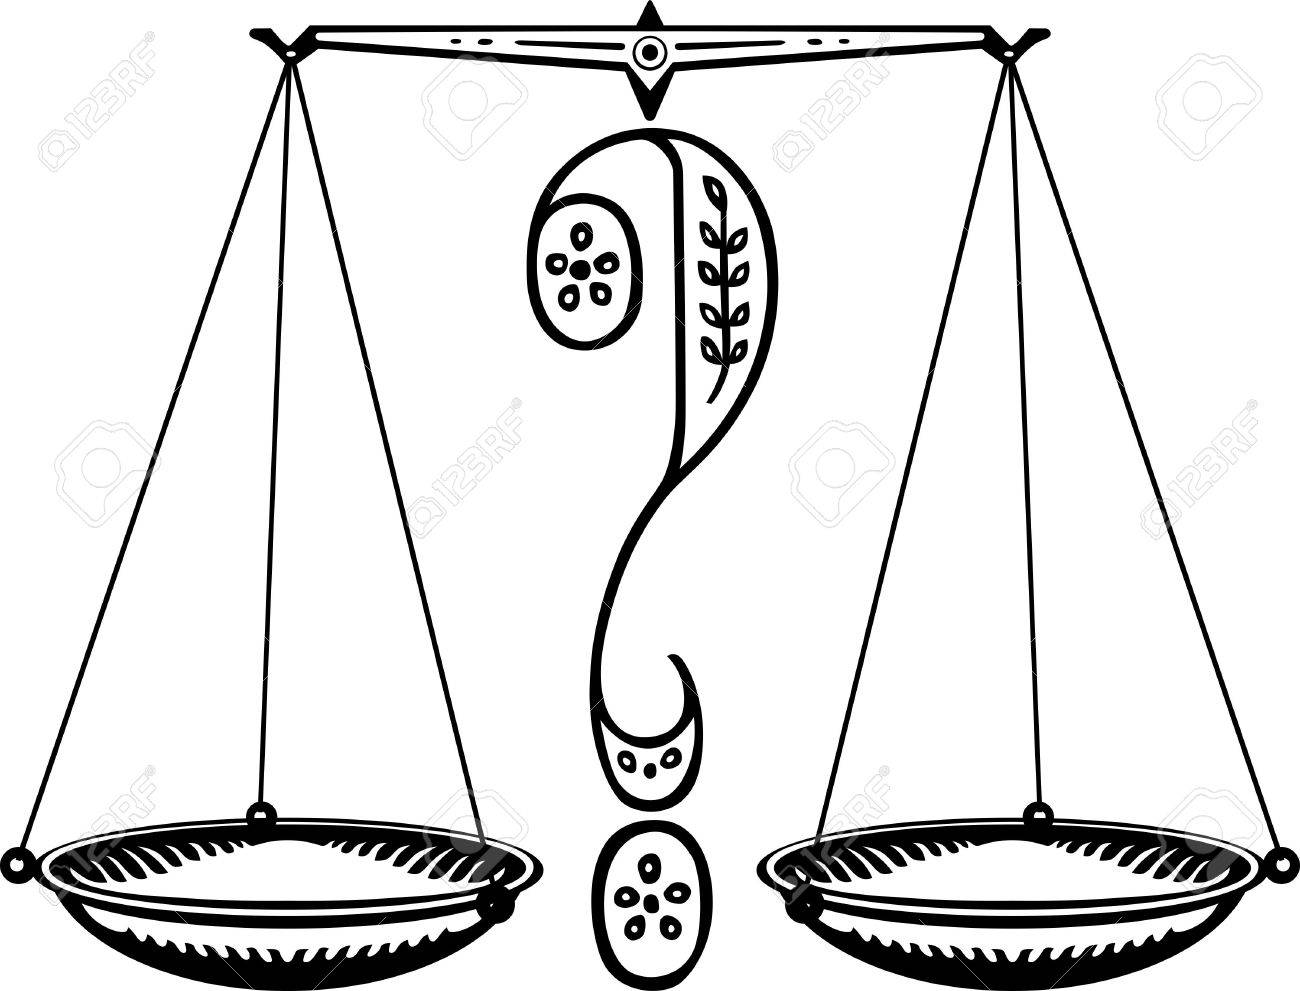 1300x991 Question Weighing Scales Royalty Free Cliparts, Vectors, And Stock